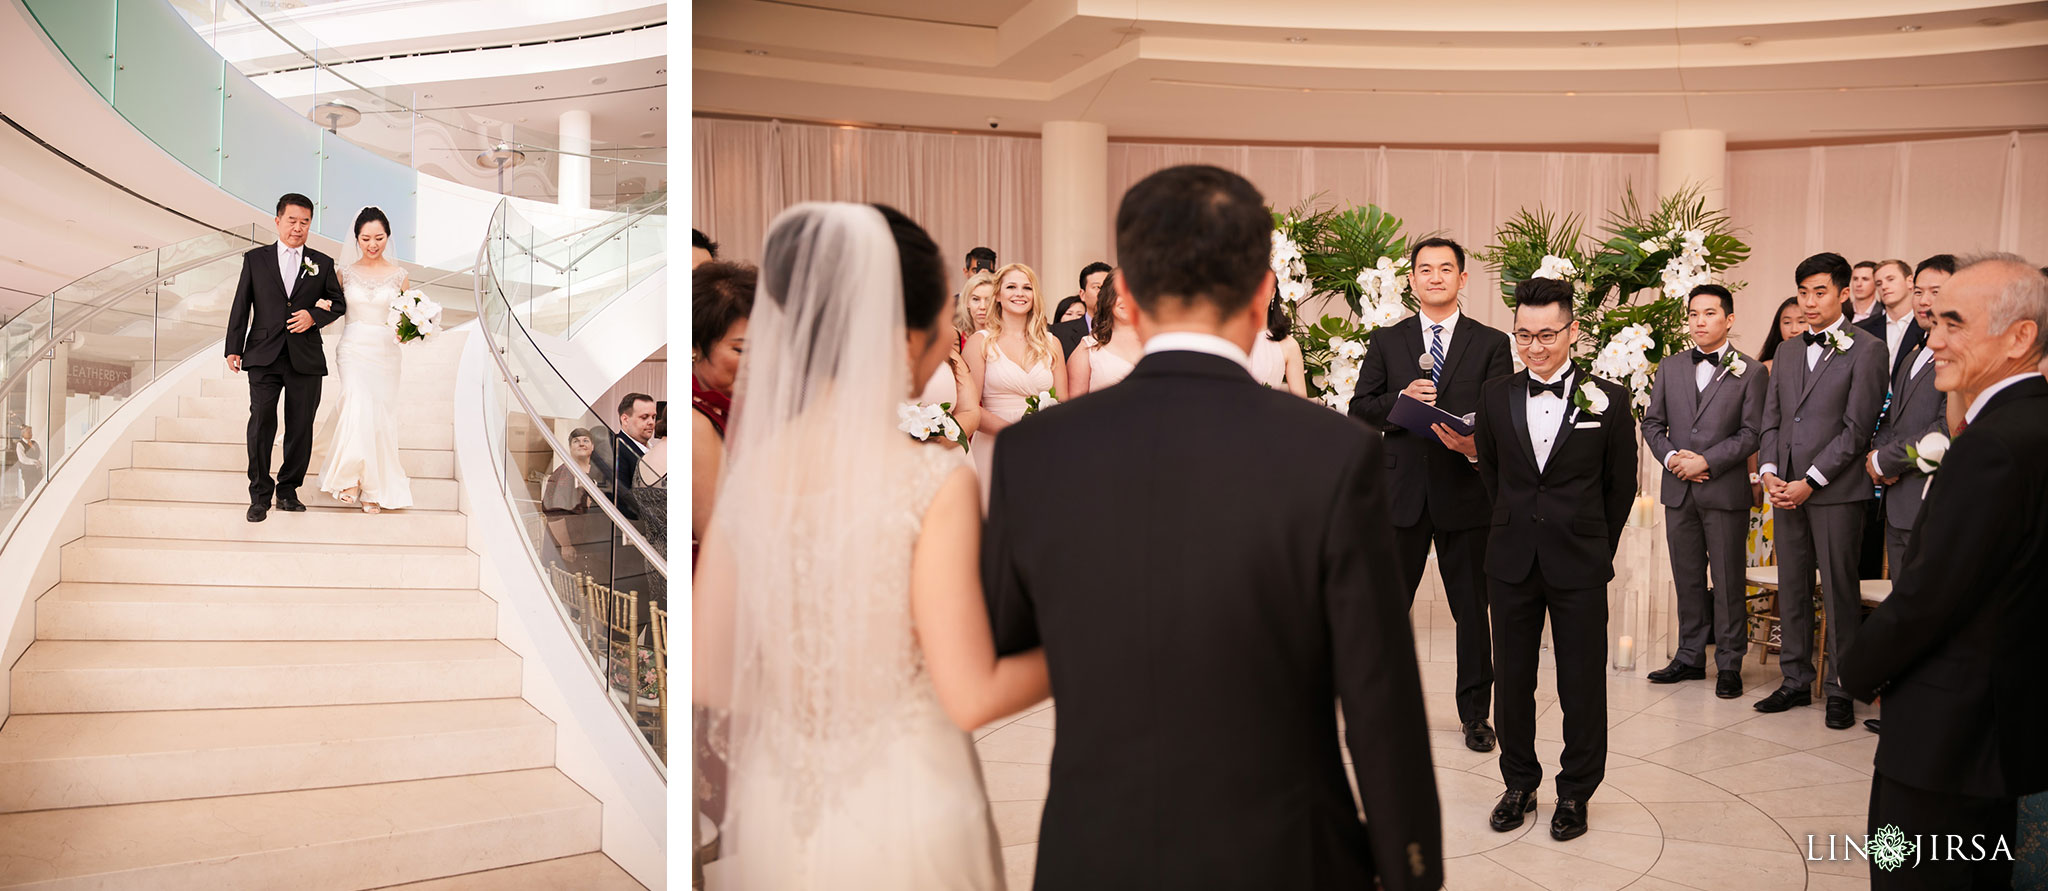 23 segerstrom center for the arts costa mesa wedding photography